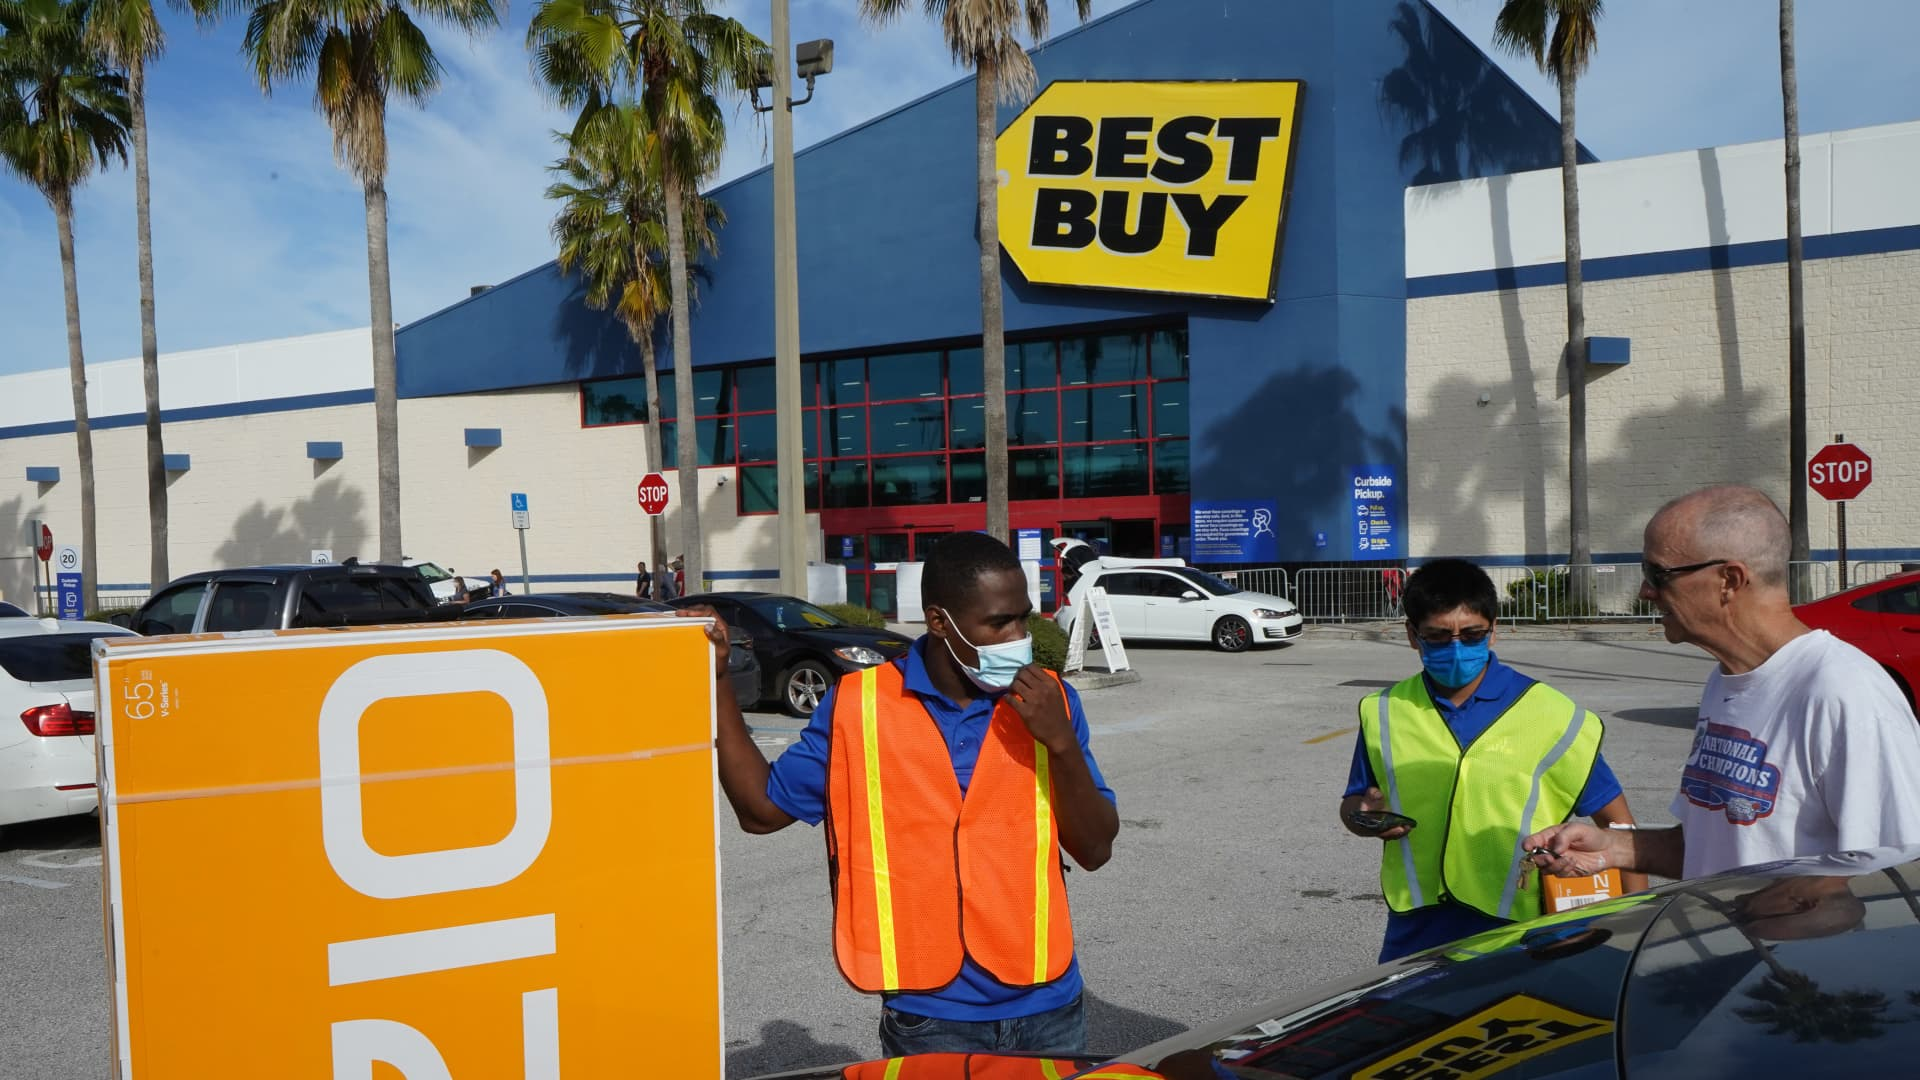 Employees bring a television to Steve Steward's car at a Best Buy store on Black Friday, traditionally one of the busiest shopping days of the year. Crowds are smaller this year due to the increasing popularity of on-line shopping amid concerns about the COVID-19 pandemic.